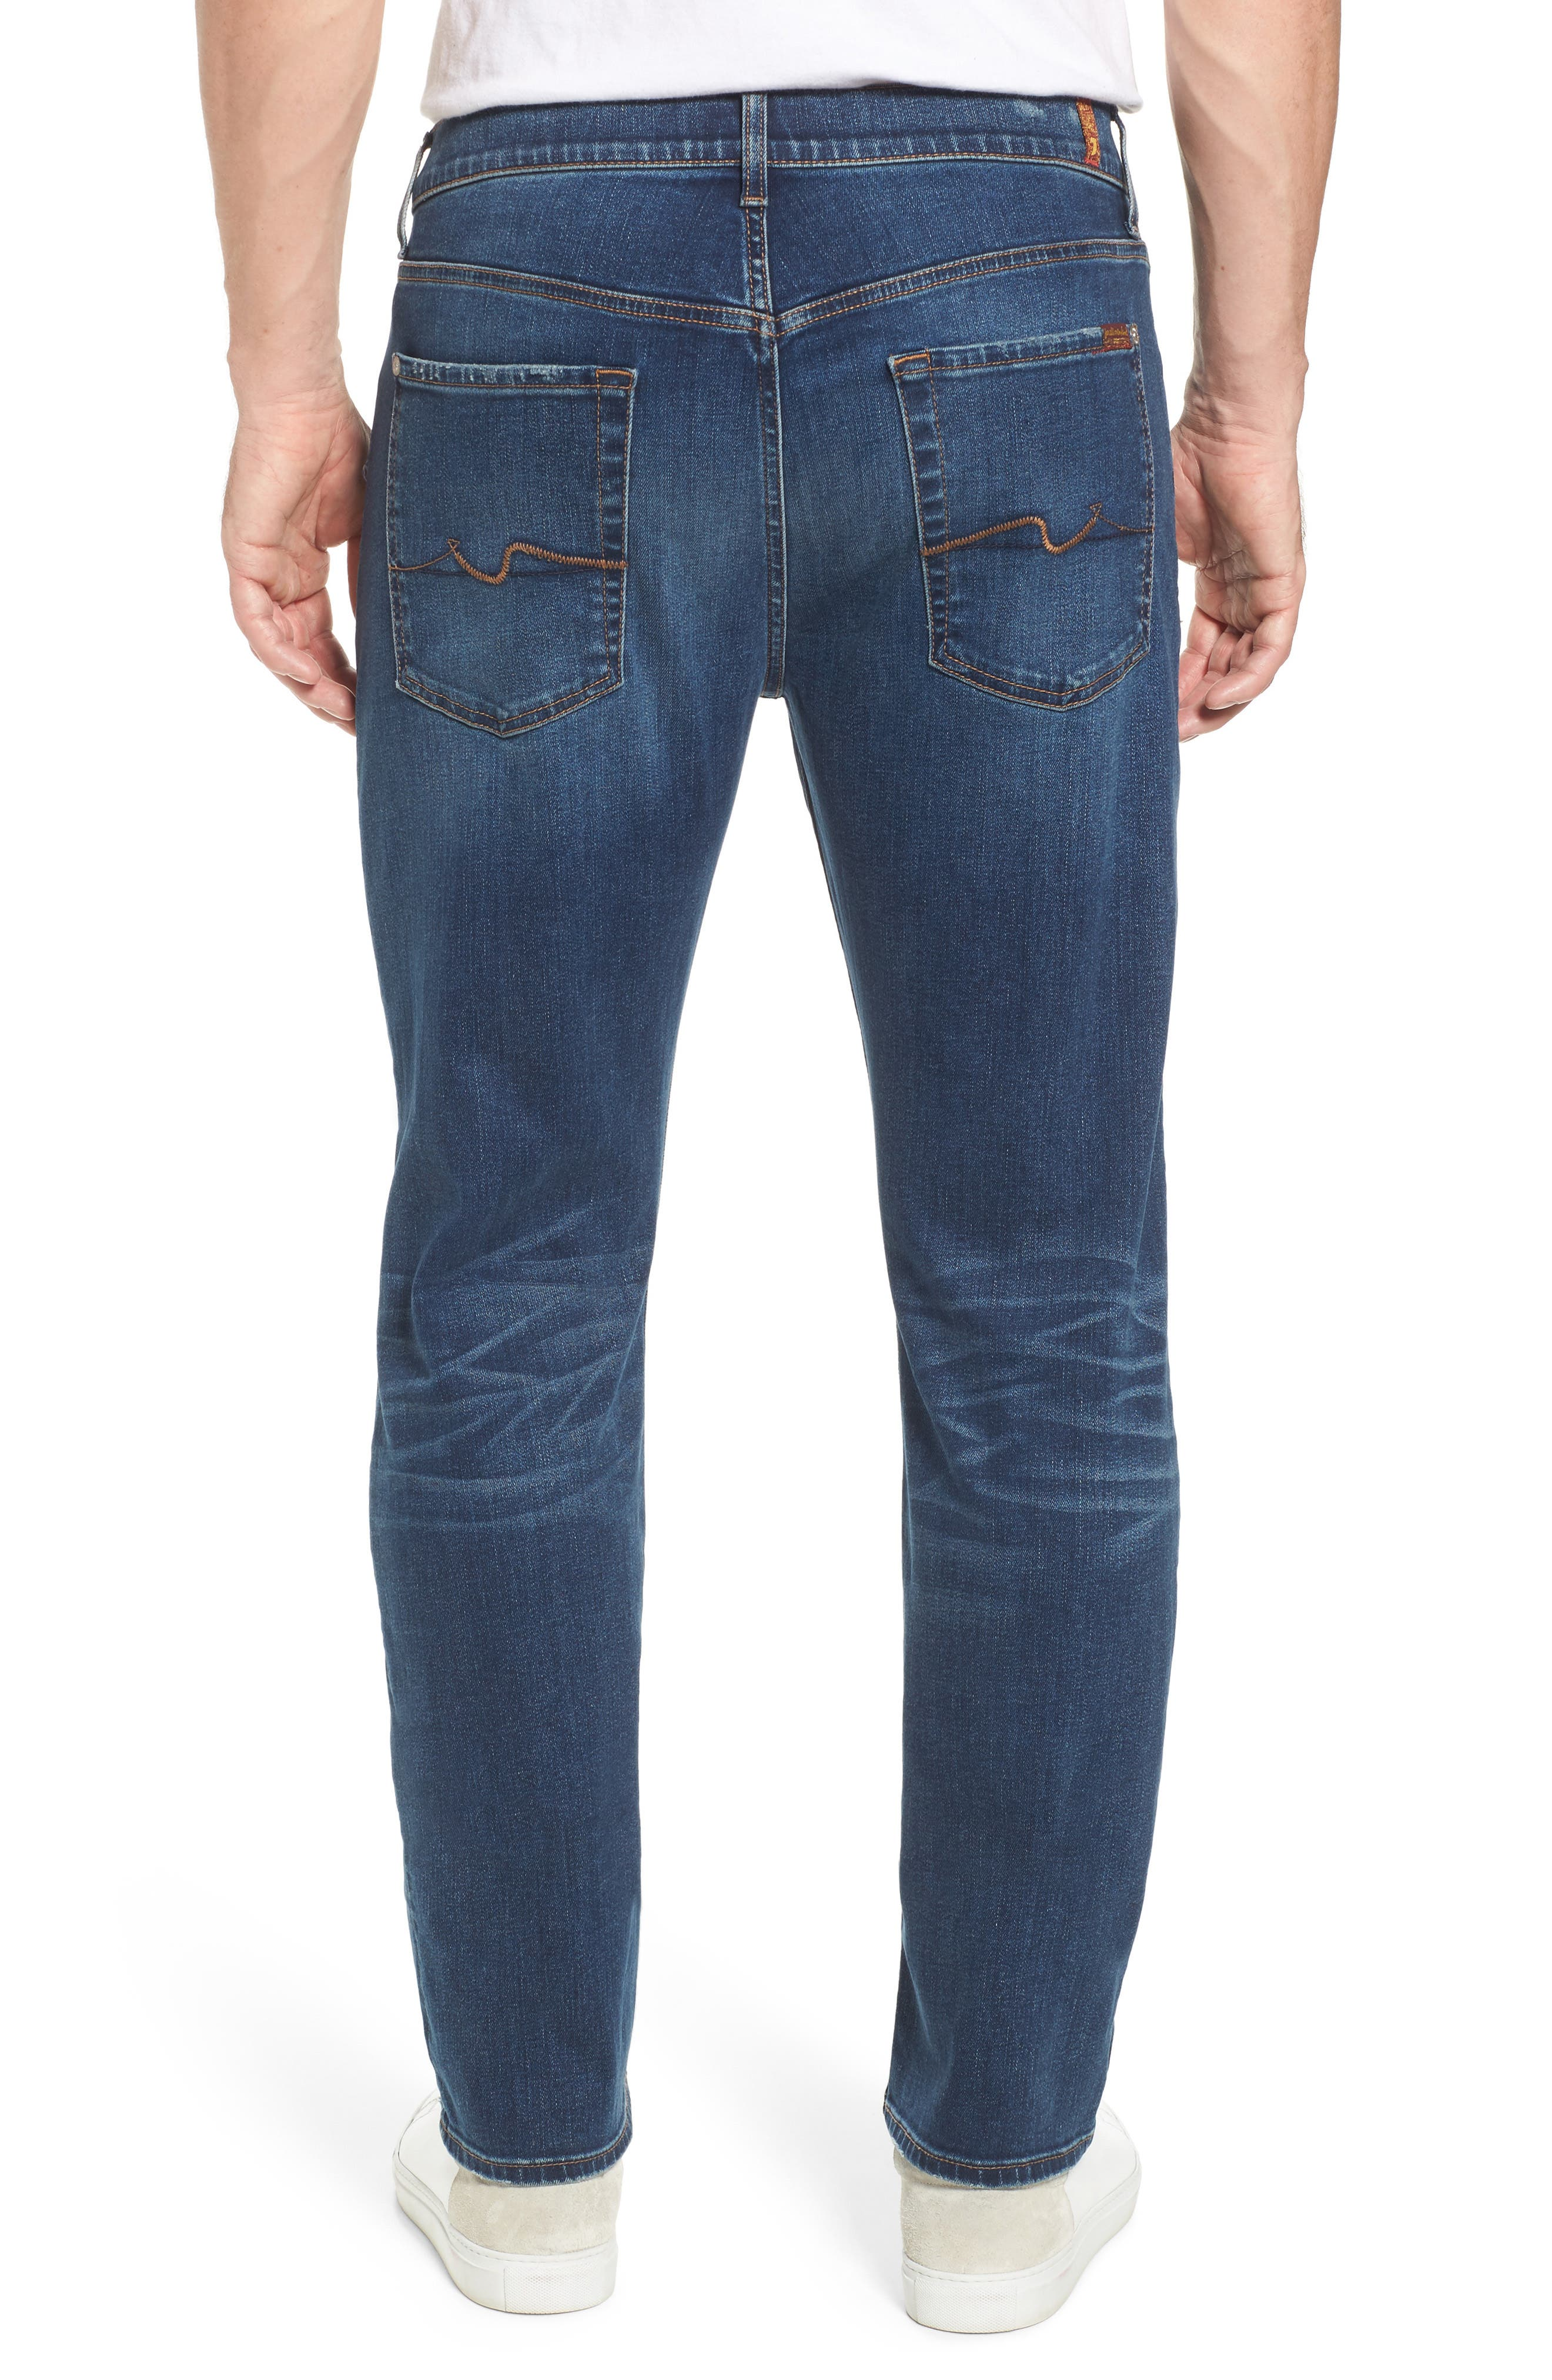 The Straight - Luxe Performance Slim Straight Leg Jeans,                             Alternate thumbnail 2, color,                             LUXE PERFORMANCE UNION